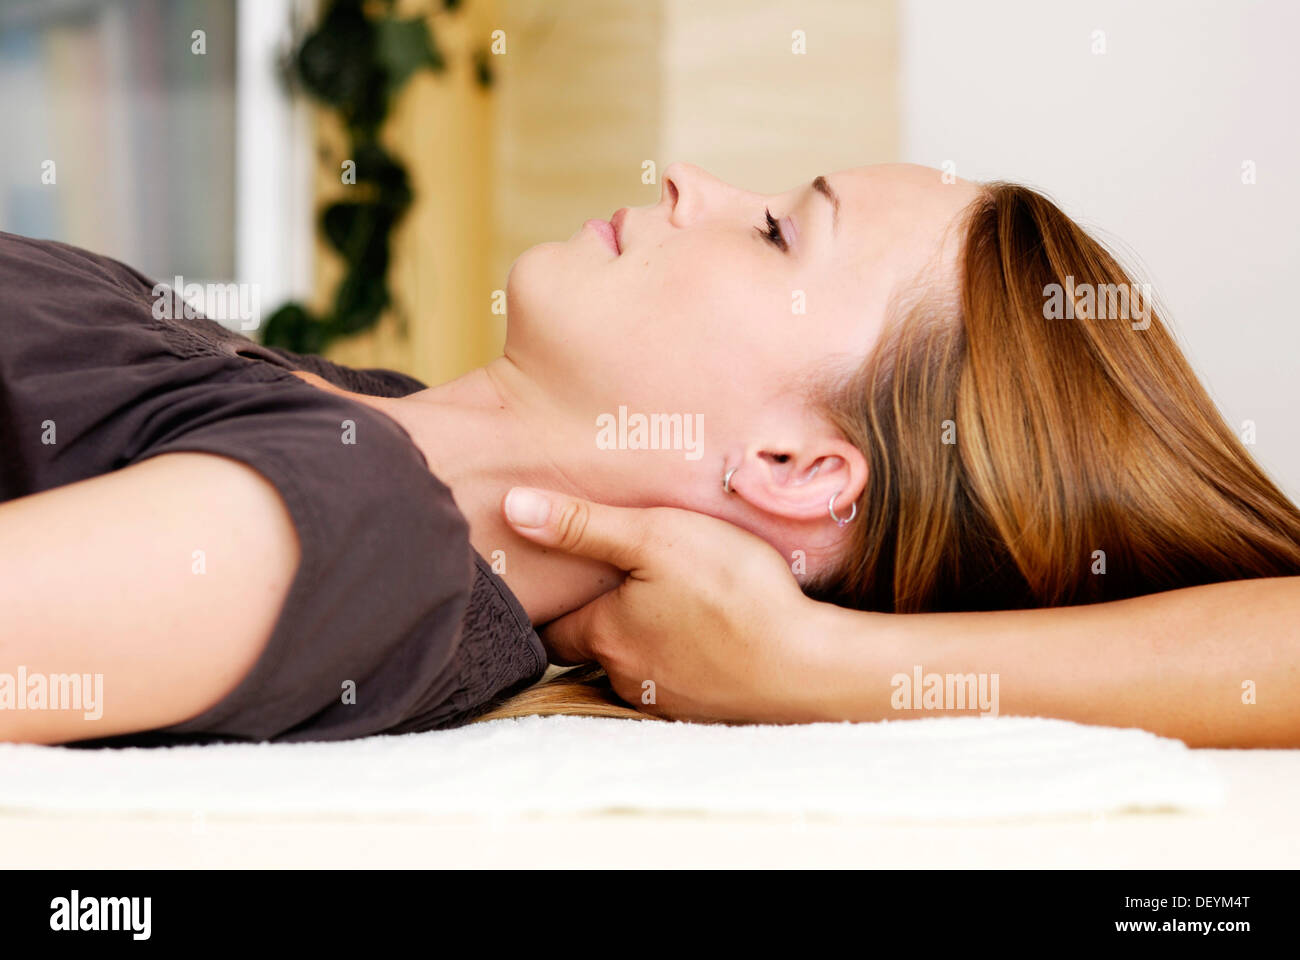 Young woman receiving cranio-sacral therapy in a natural healing practice - Stock Image